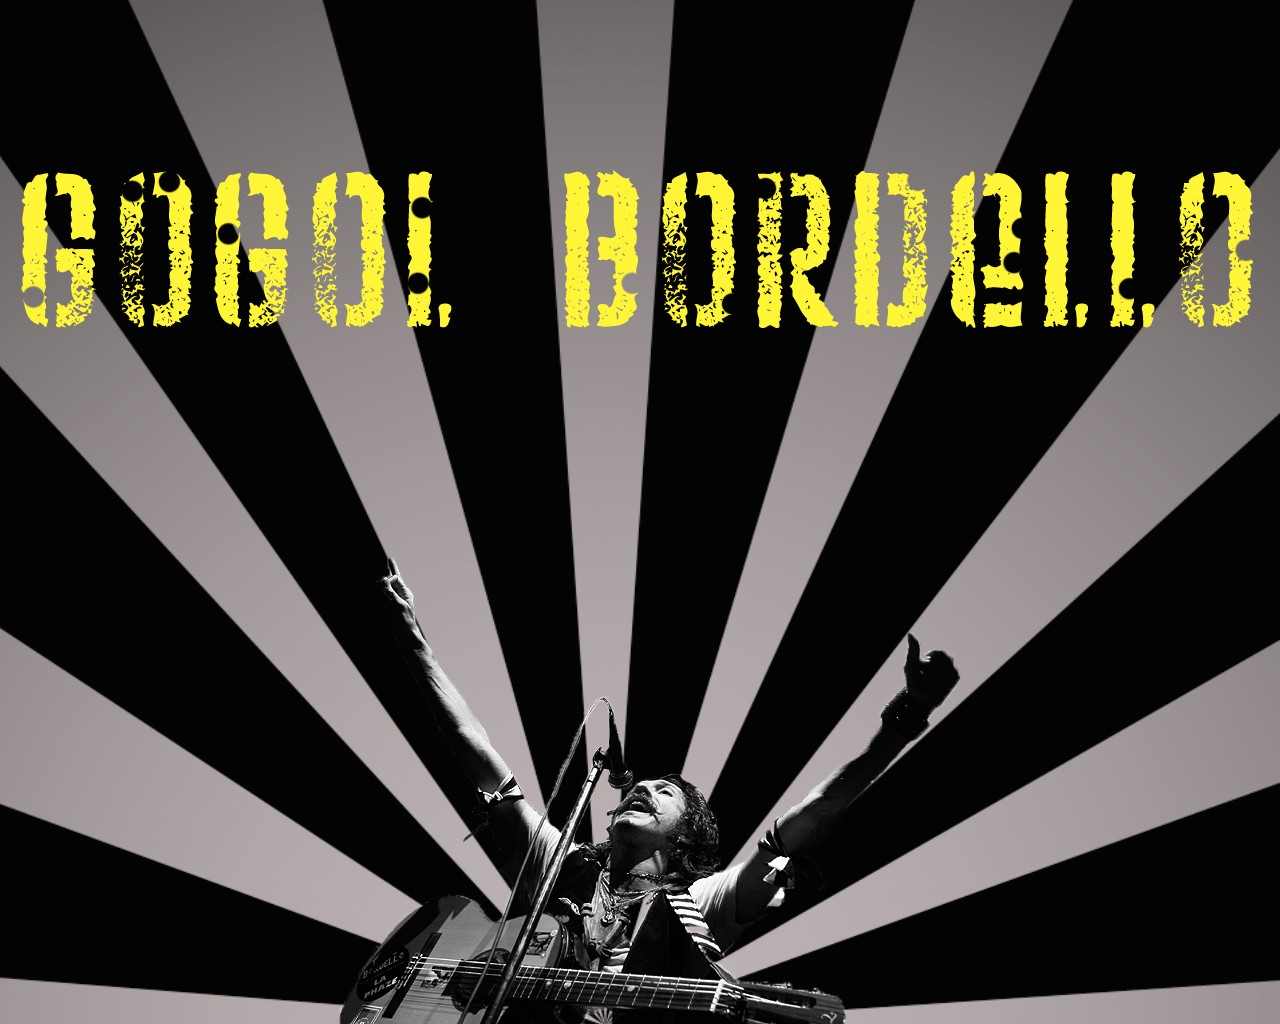 Gipsy darker gogol bordello HD Wallpaper